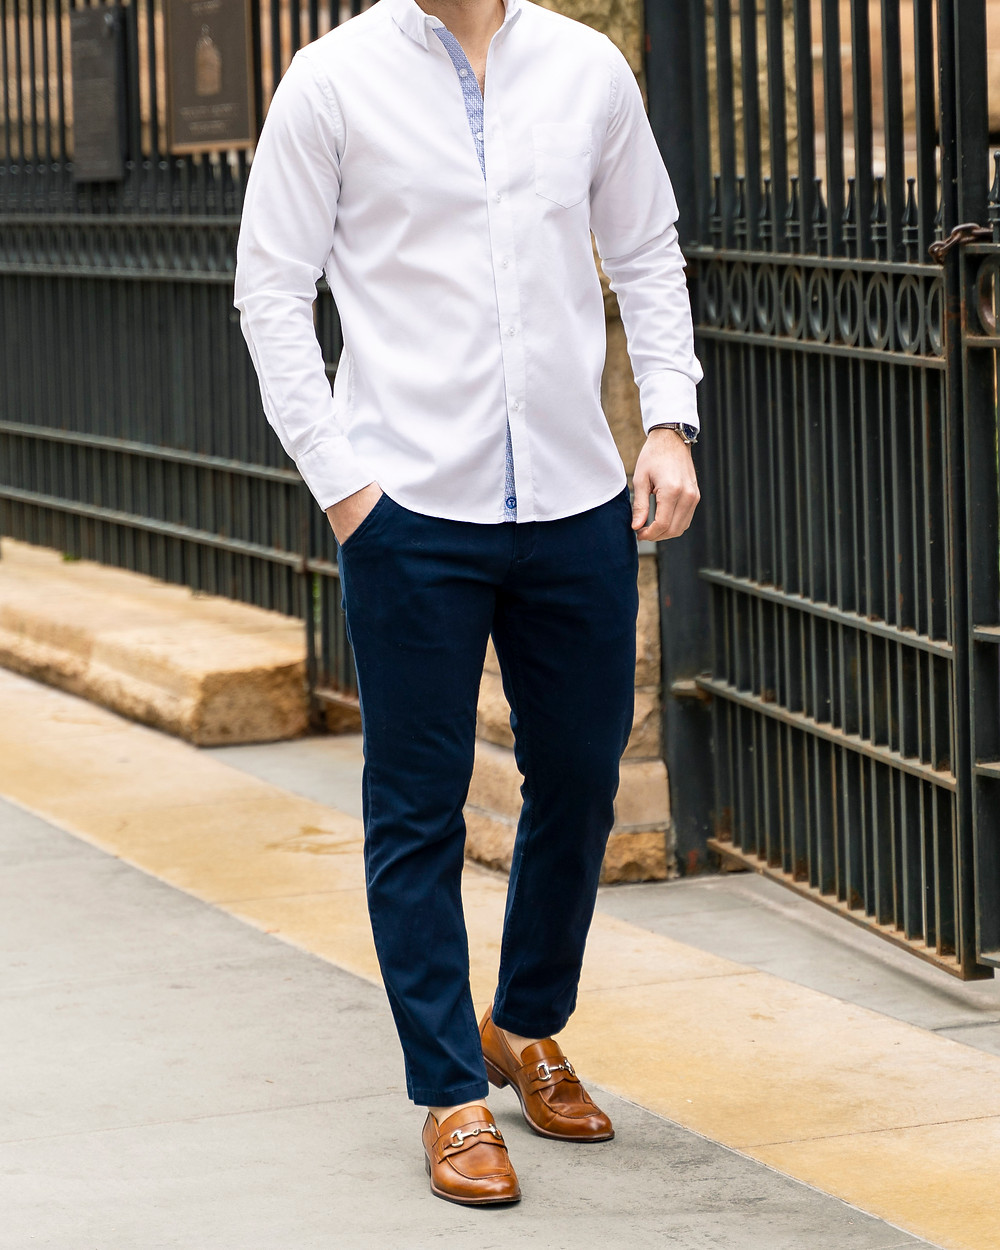 blue Mugsy chinos with white dress shirt and loafers.